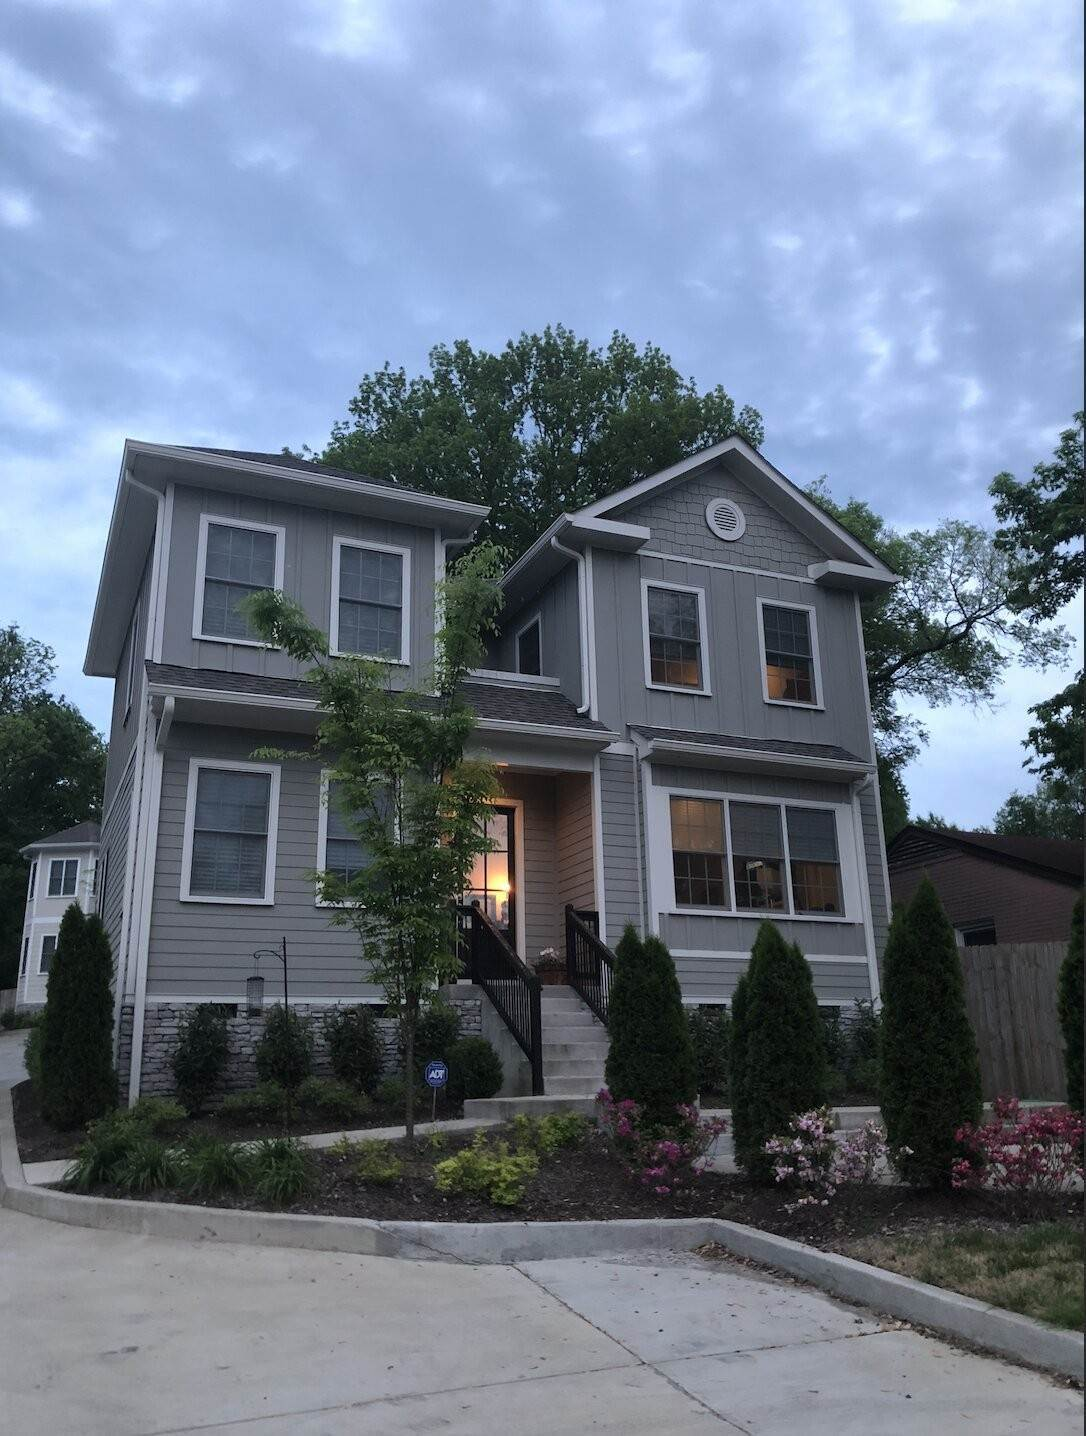 Single Family Homes for Sale at 2013 A Scott Avenue, Nashville, TN 37206 2013 A Scott Avenue Nashville, Tennessee 37206 United States